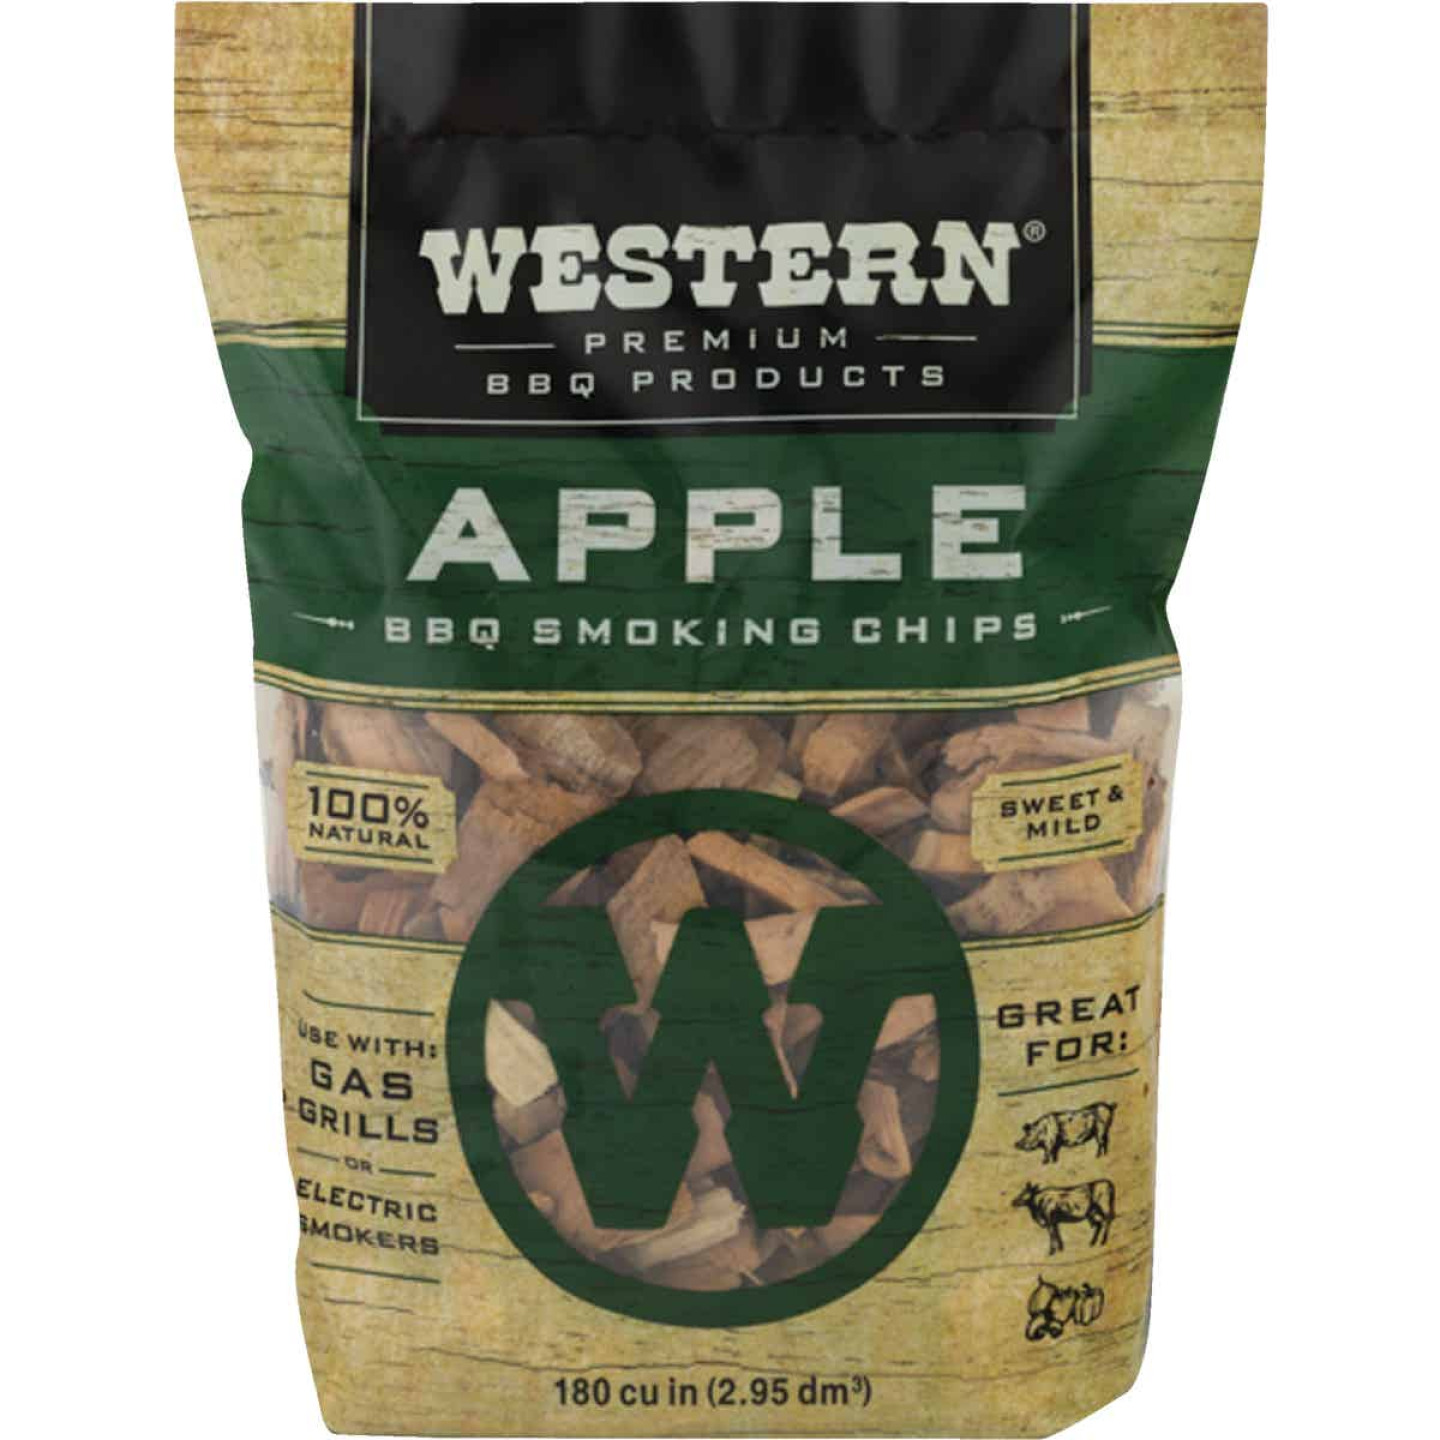 Western 2 Lb. Apple Wood Smoking Chips Image 1